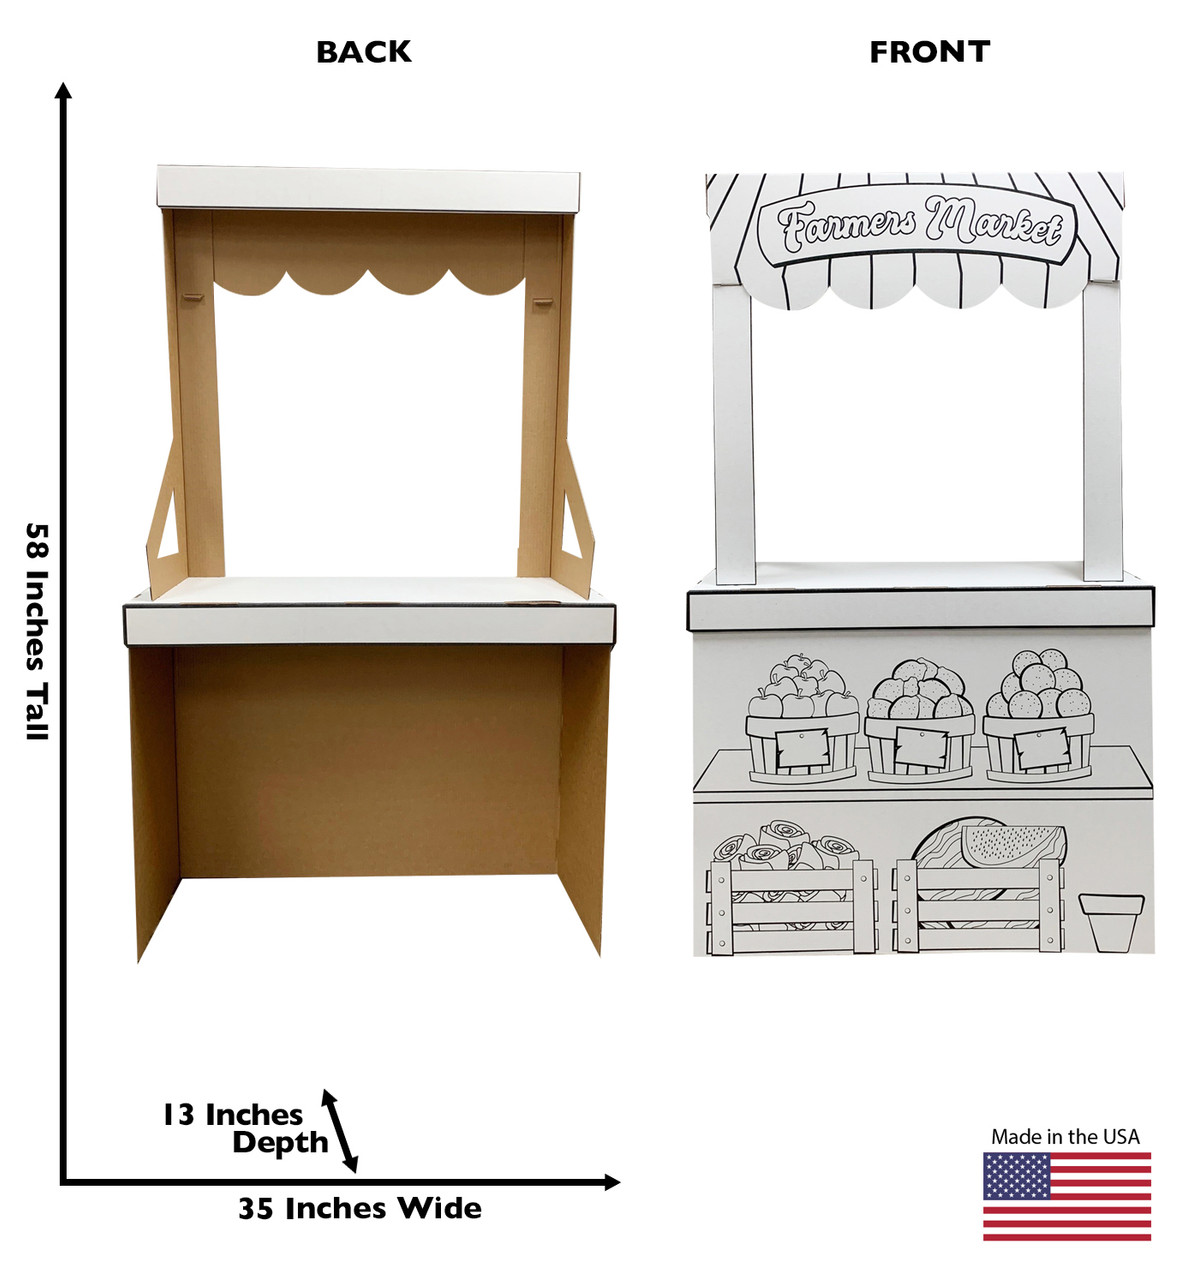 Life-size Color Me Farmers Market Stand with front and back dimensions.